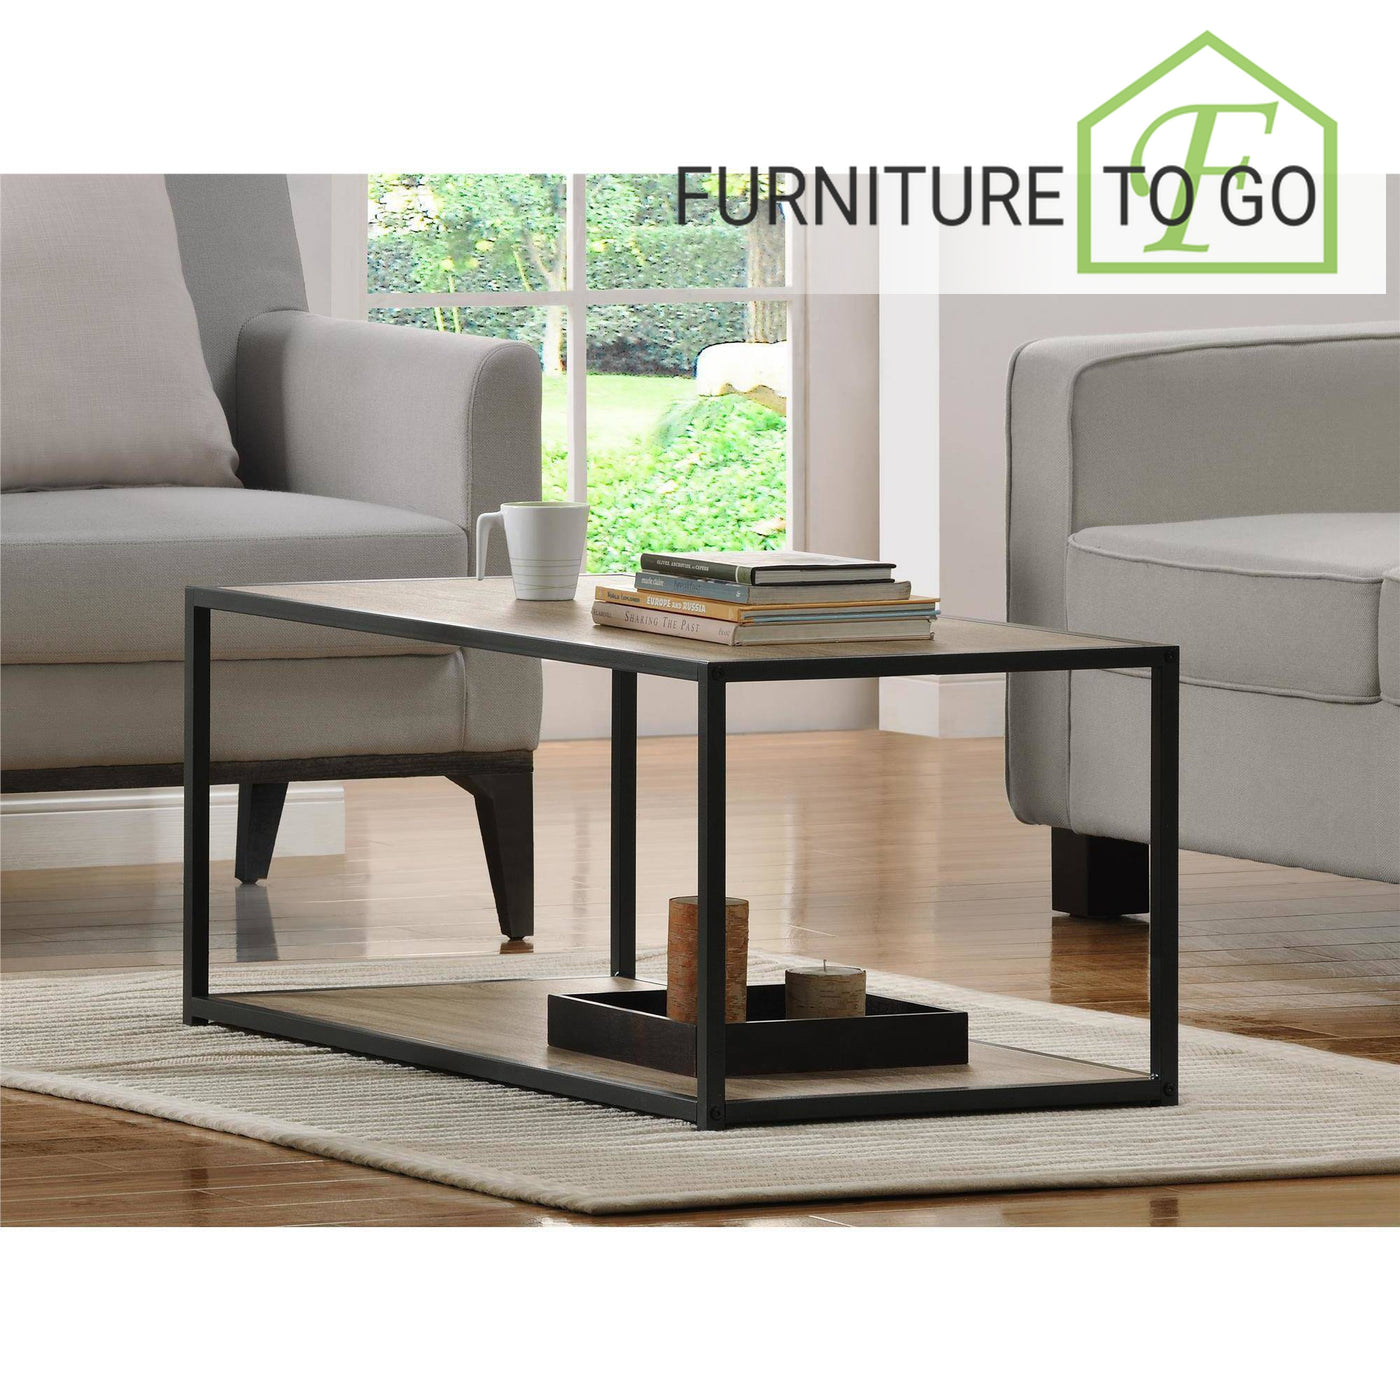 Admirable Clearance Furniture In Dallas 60 00 Grey Oak Canton Coffee Table Pabps2019 Chair Design Images Pabps2019Com